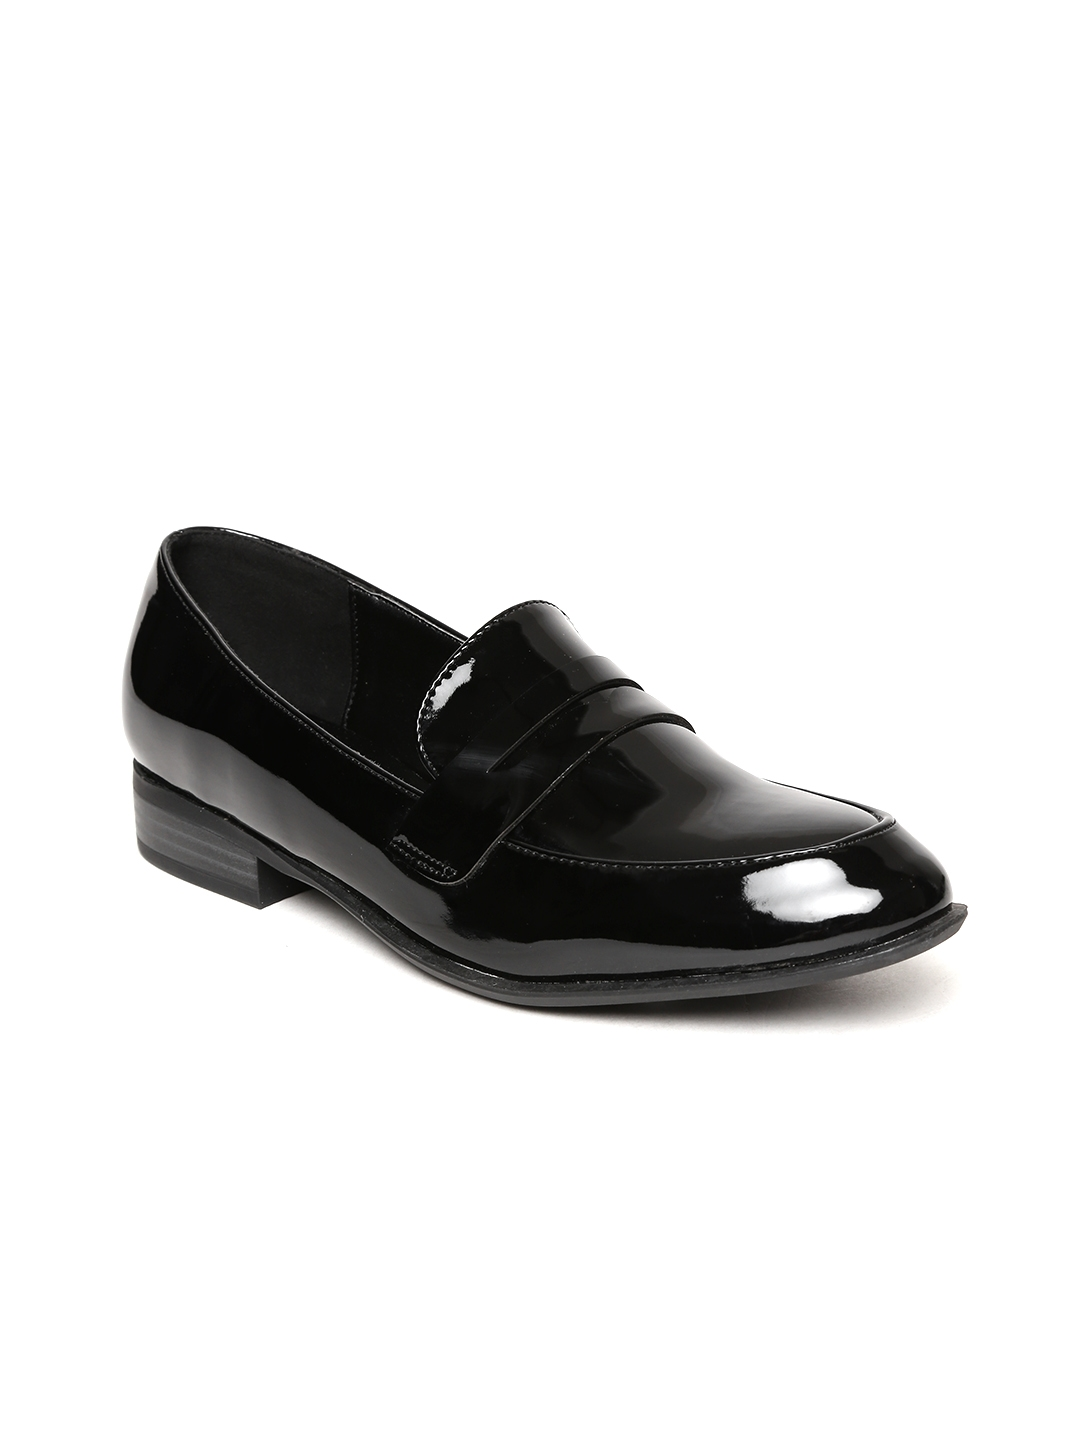 0e5245e7040 Buy Allen Solly Women Black Glossy Penny Loafers - Casual Shoes for ...